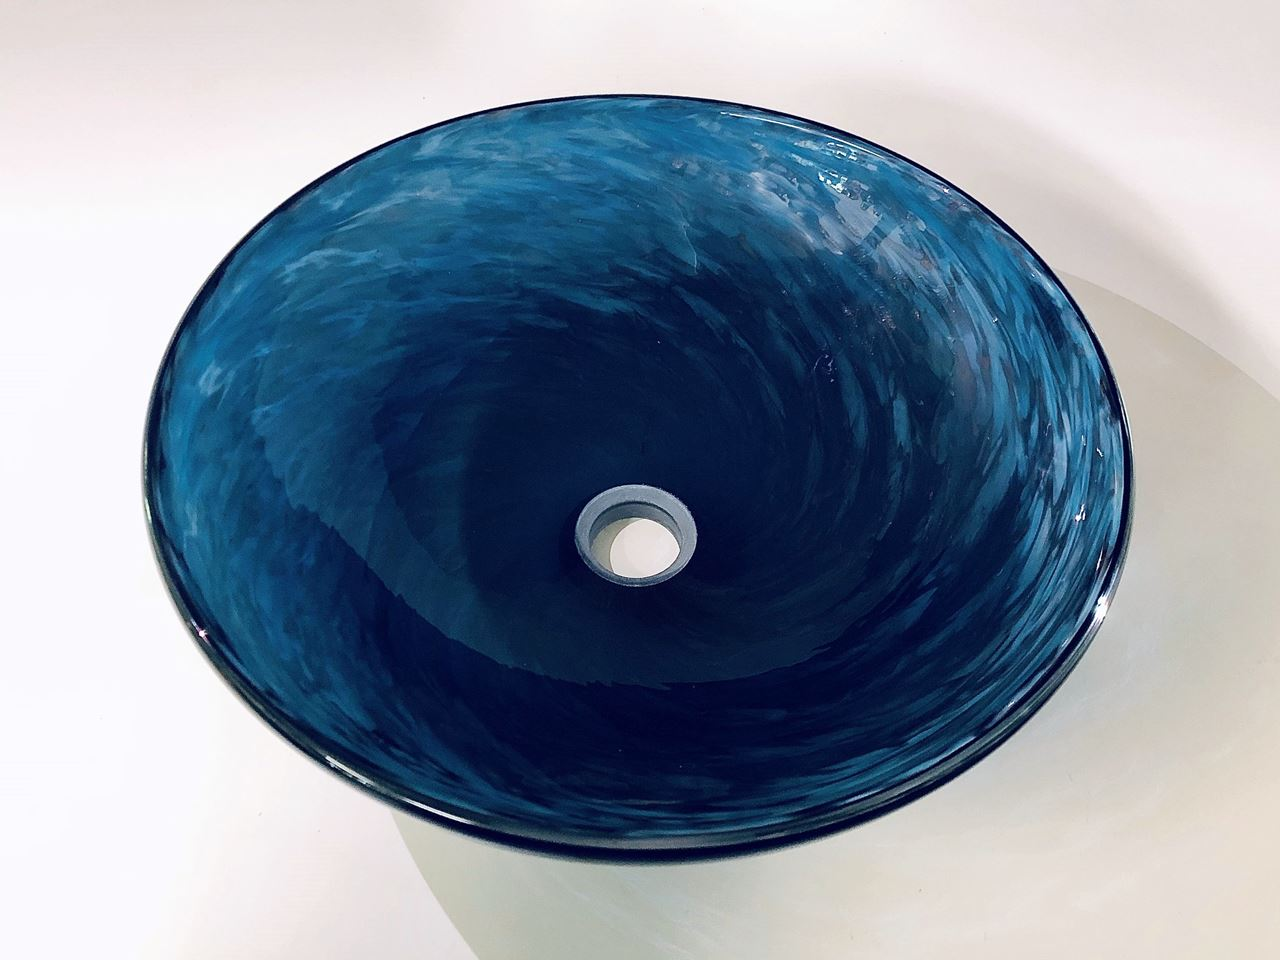 Picture of Blown Glass Sink - Tidepool